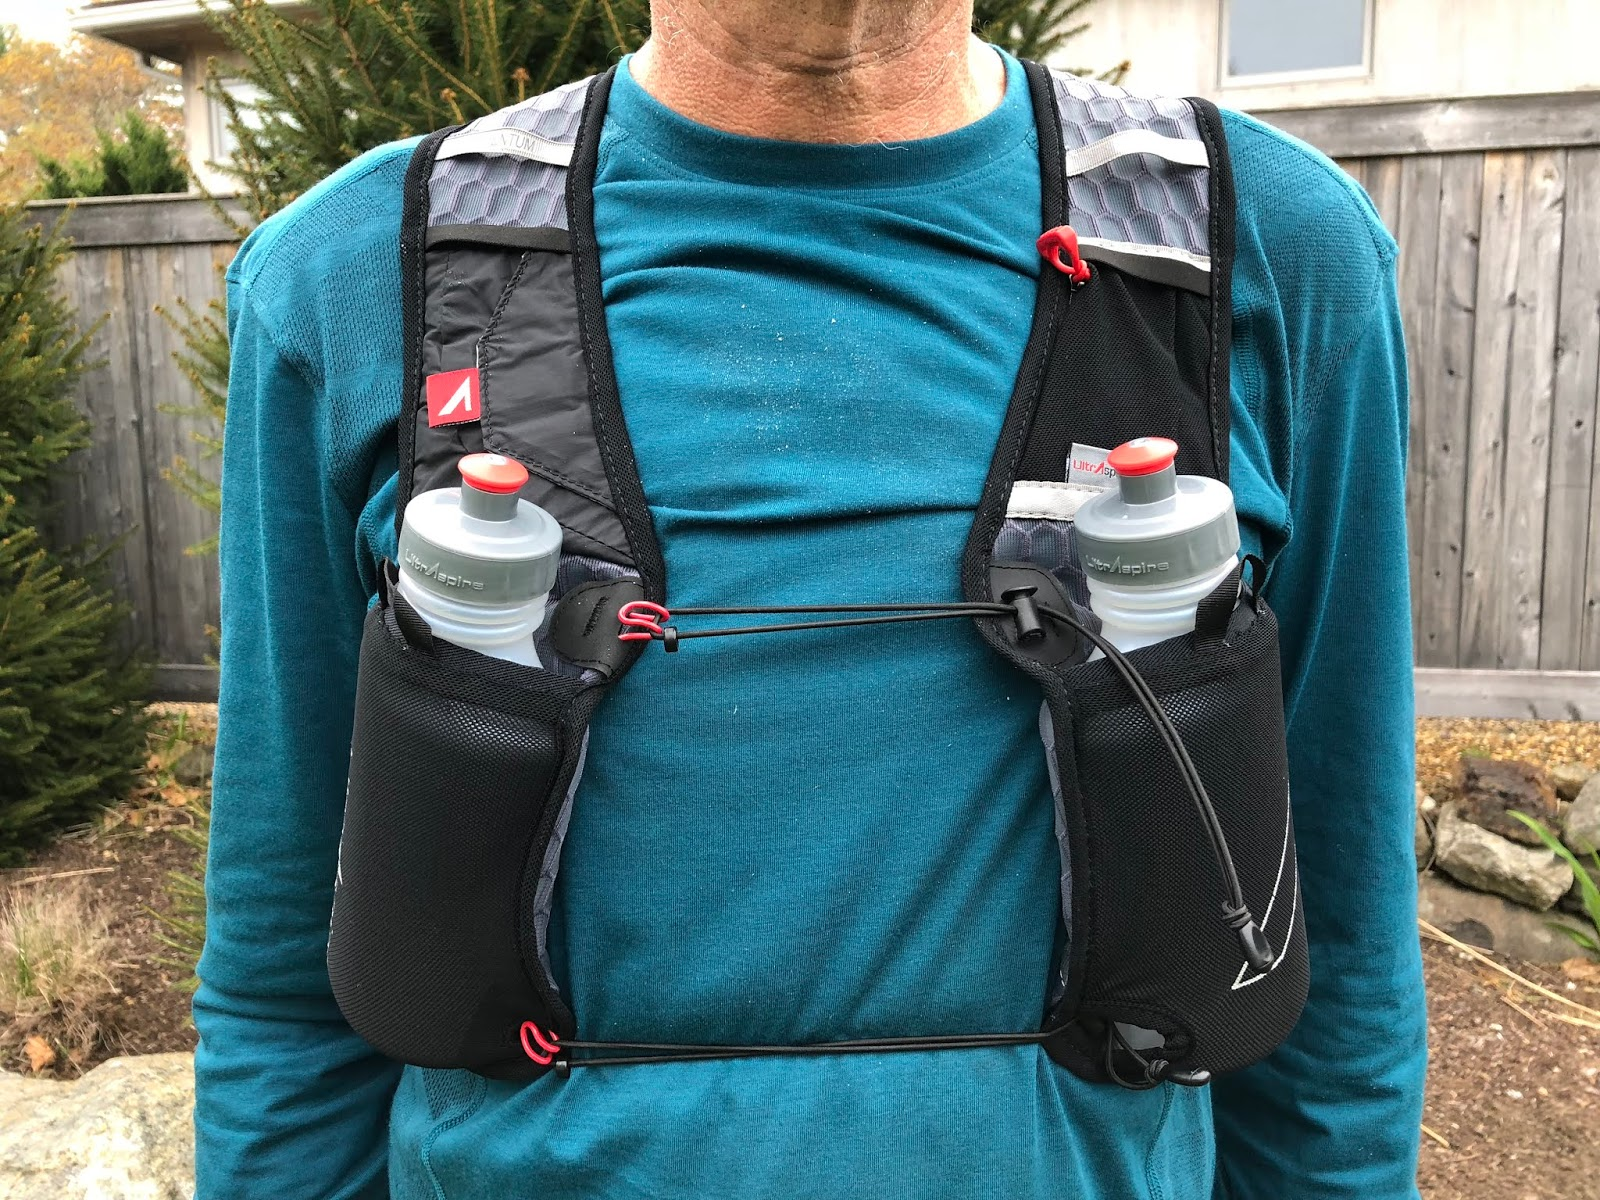 1fdd909639 The two mesh front pockets securely hold the semi rigid, body contouring  UltrAspire UltraFlask 550 ($15), each with 550ml of capacity.